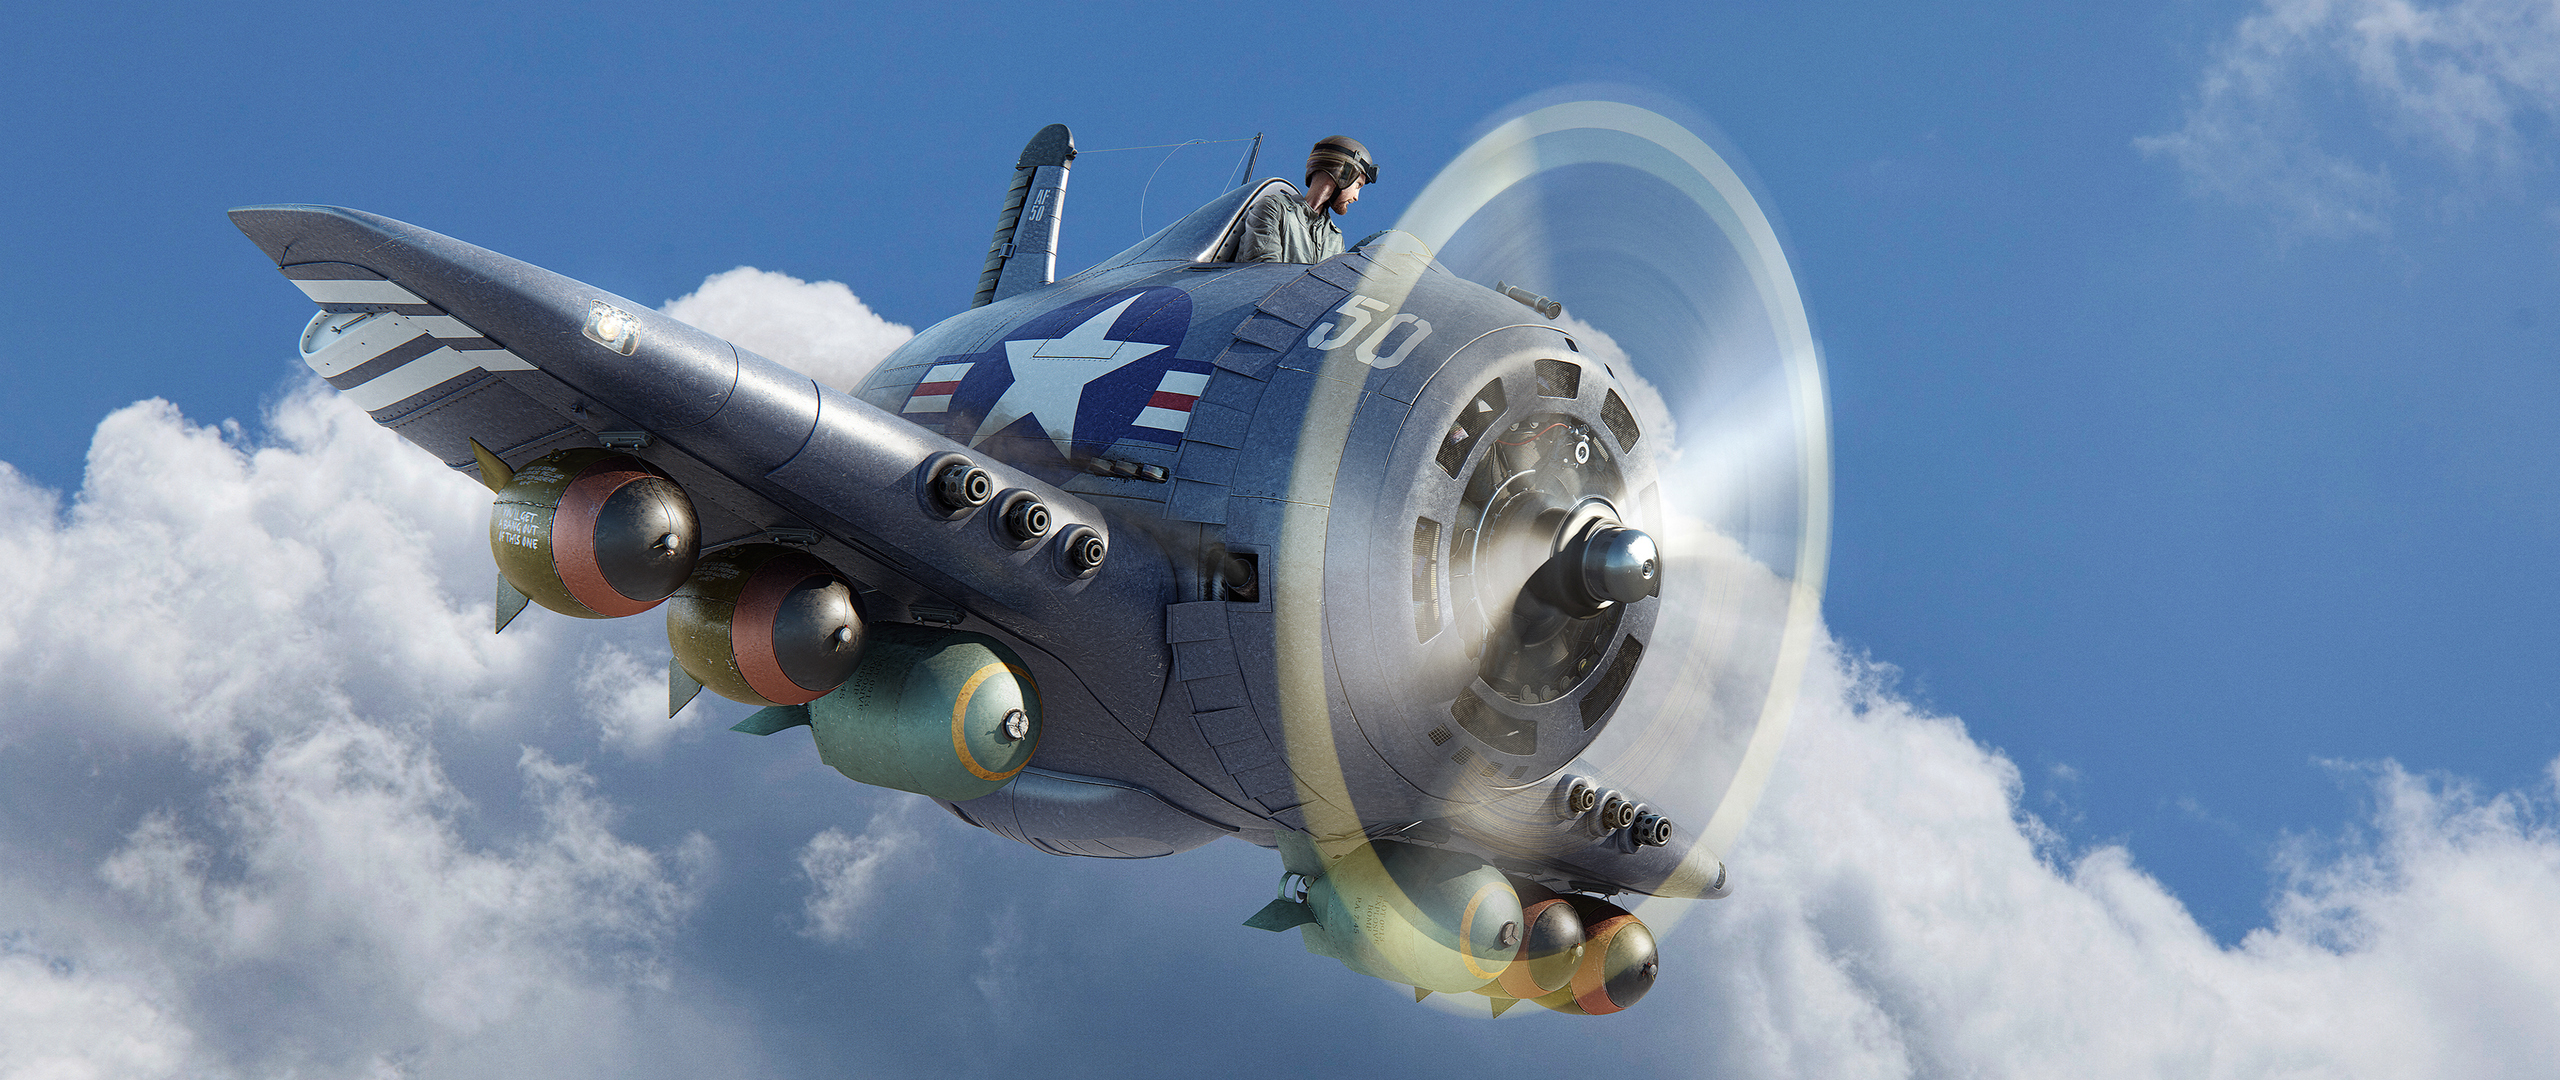 2560x1080 Old Vintage Usa Jet 4k 2560x1080 Resolution Hd 4k Wallpapers Images Backgrounds Photos And Pictures